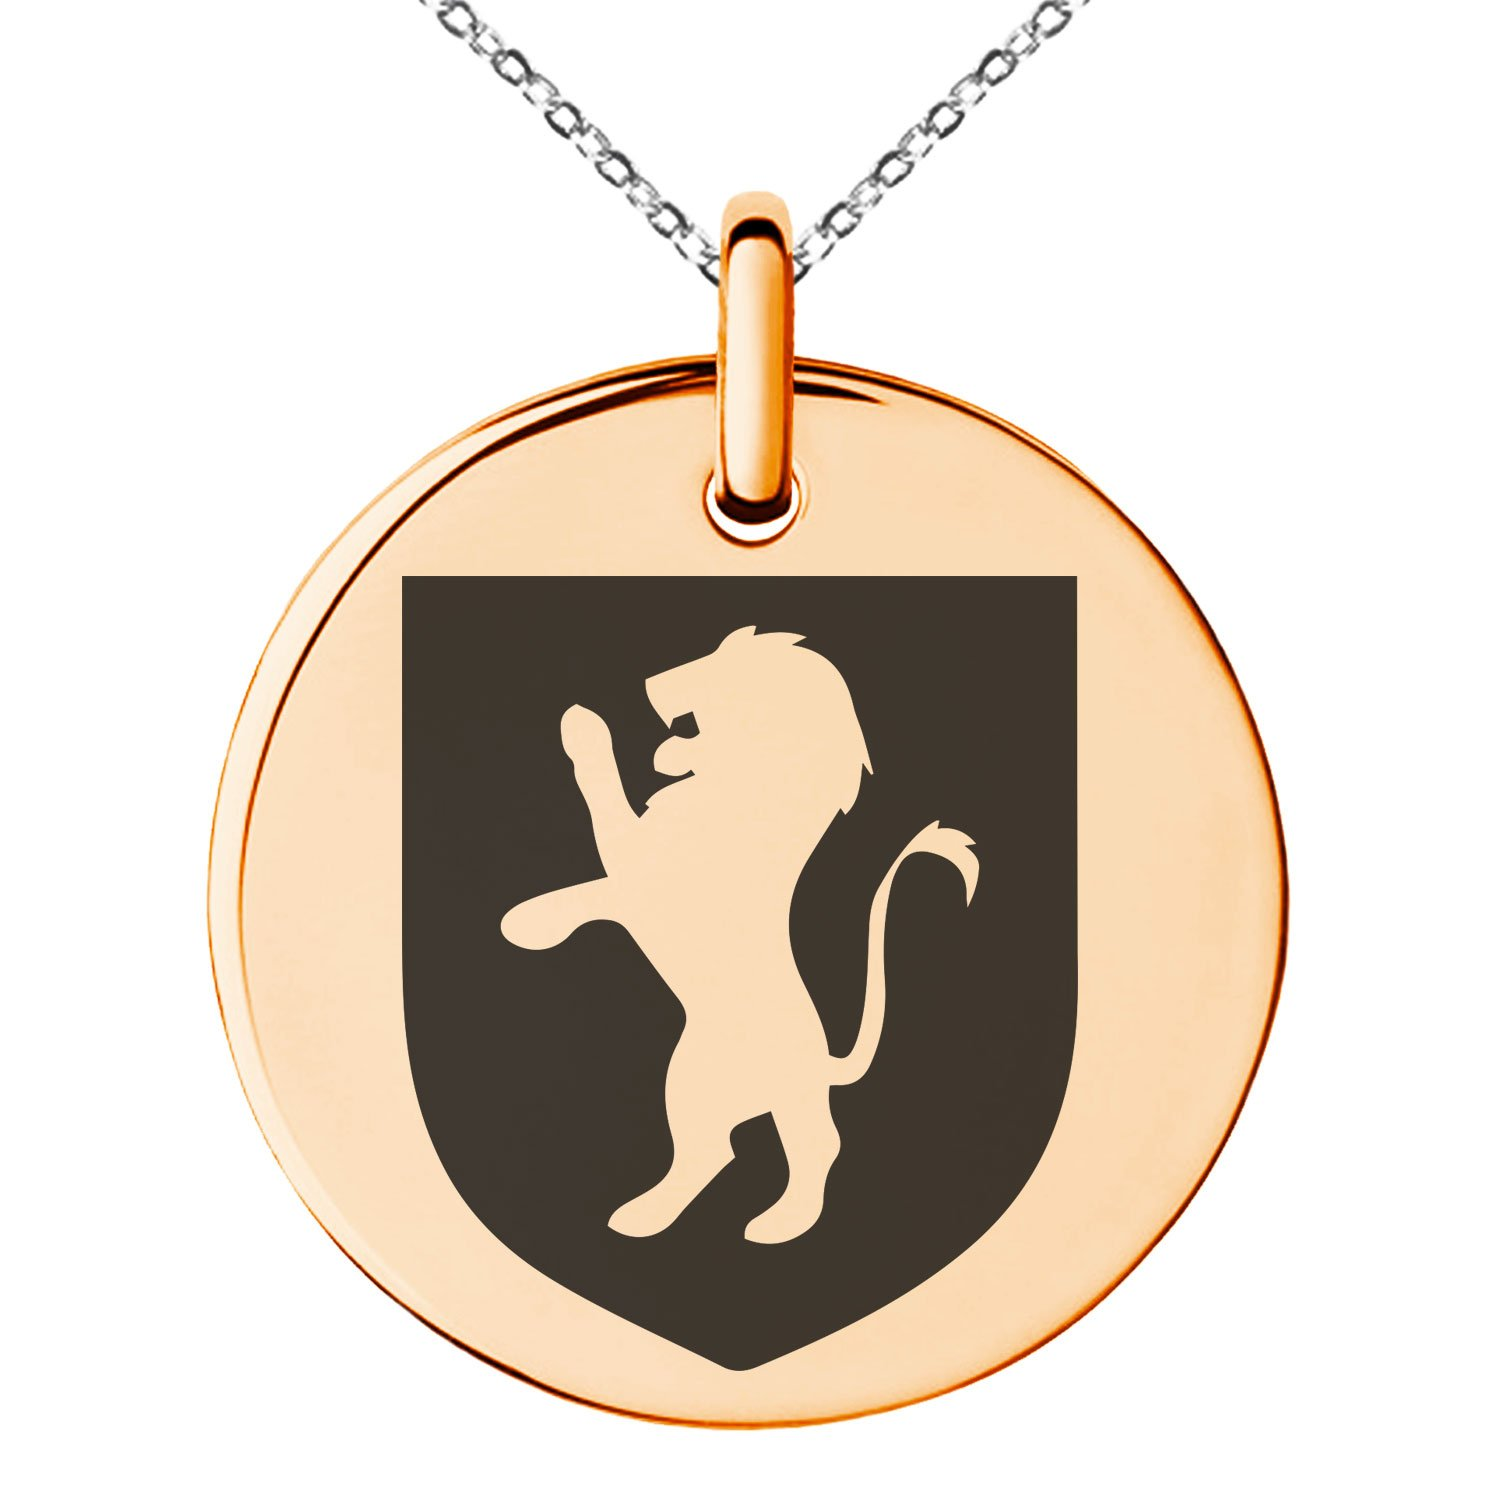 Rose Gold Plated Stainless Steel Lion Courage Coat of Arms Shield Symbol Engraved Small Medallion Circle Charm Pendant Necklace